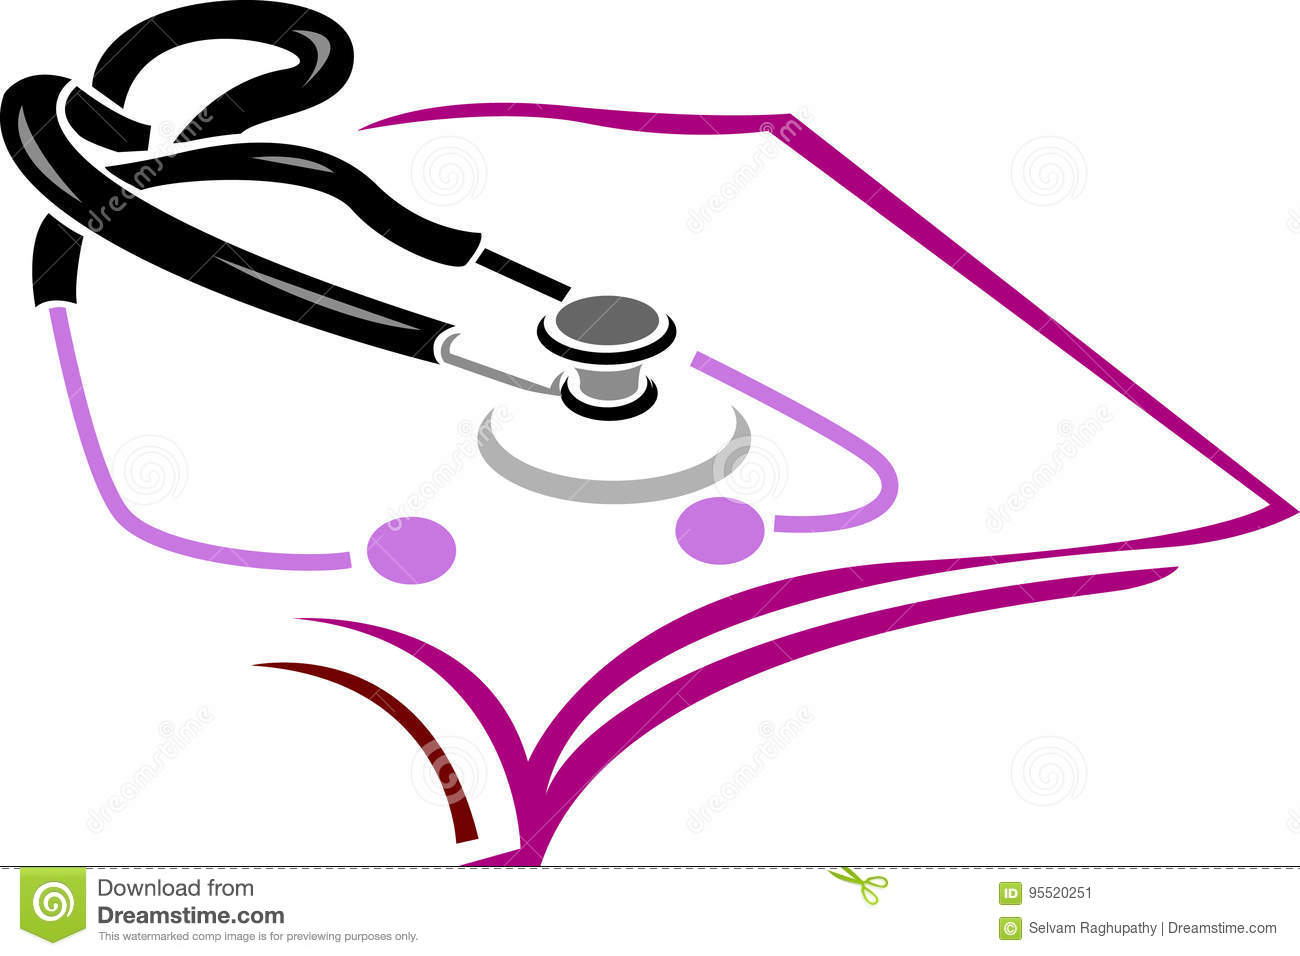 stethoscope coloring page.html